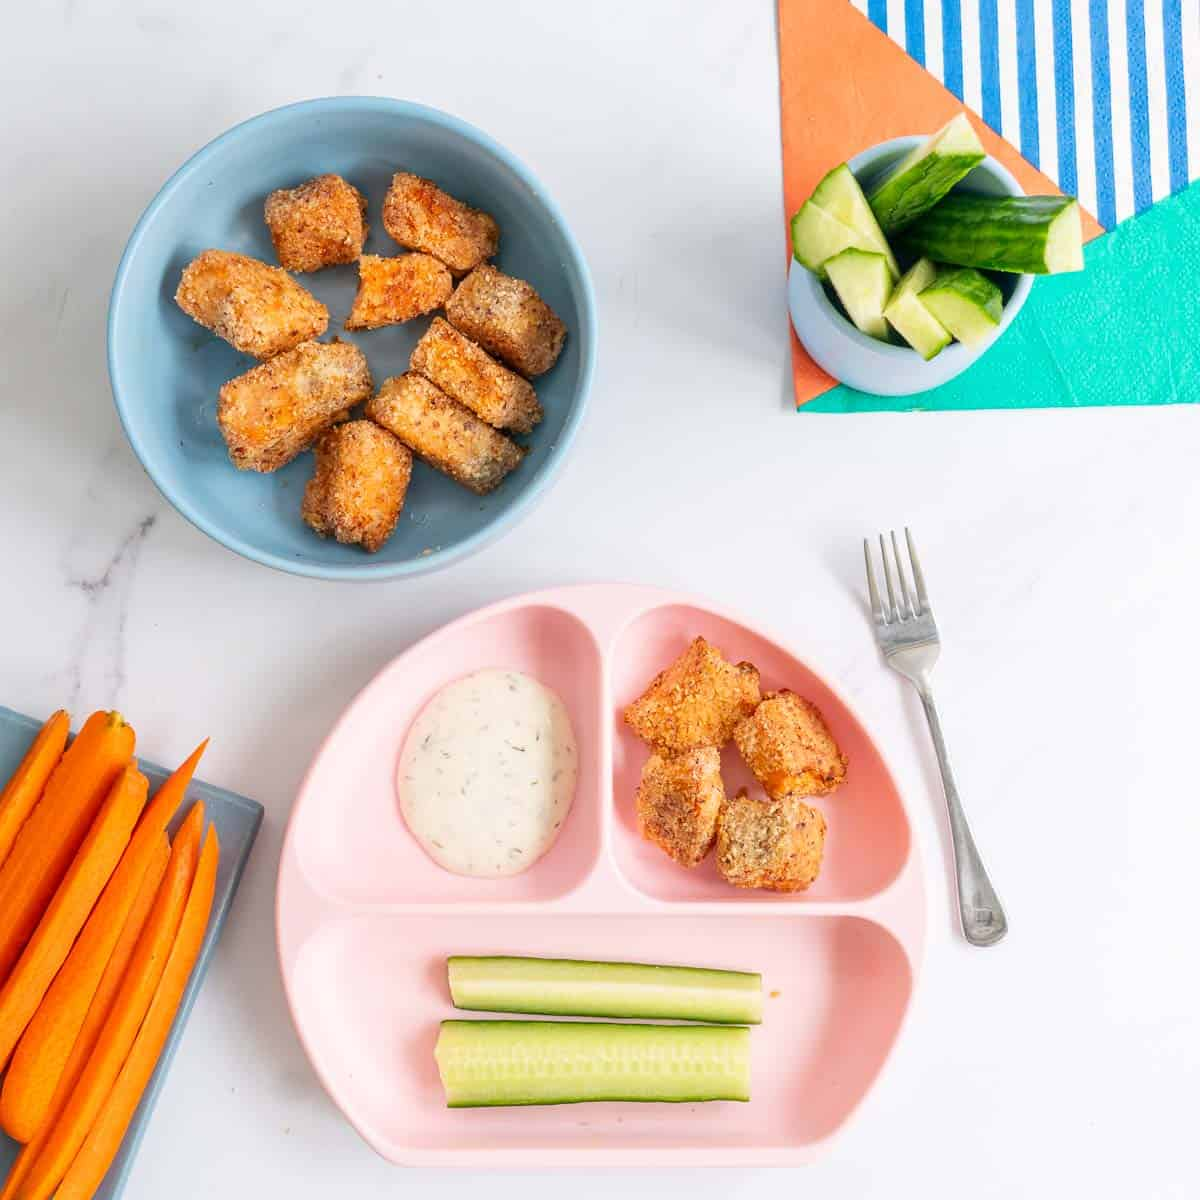 Baby meal served in a pink divided plate with salmon nuggets, cucumber and dipping sauce.